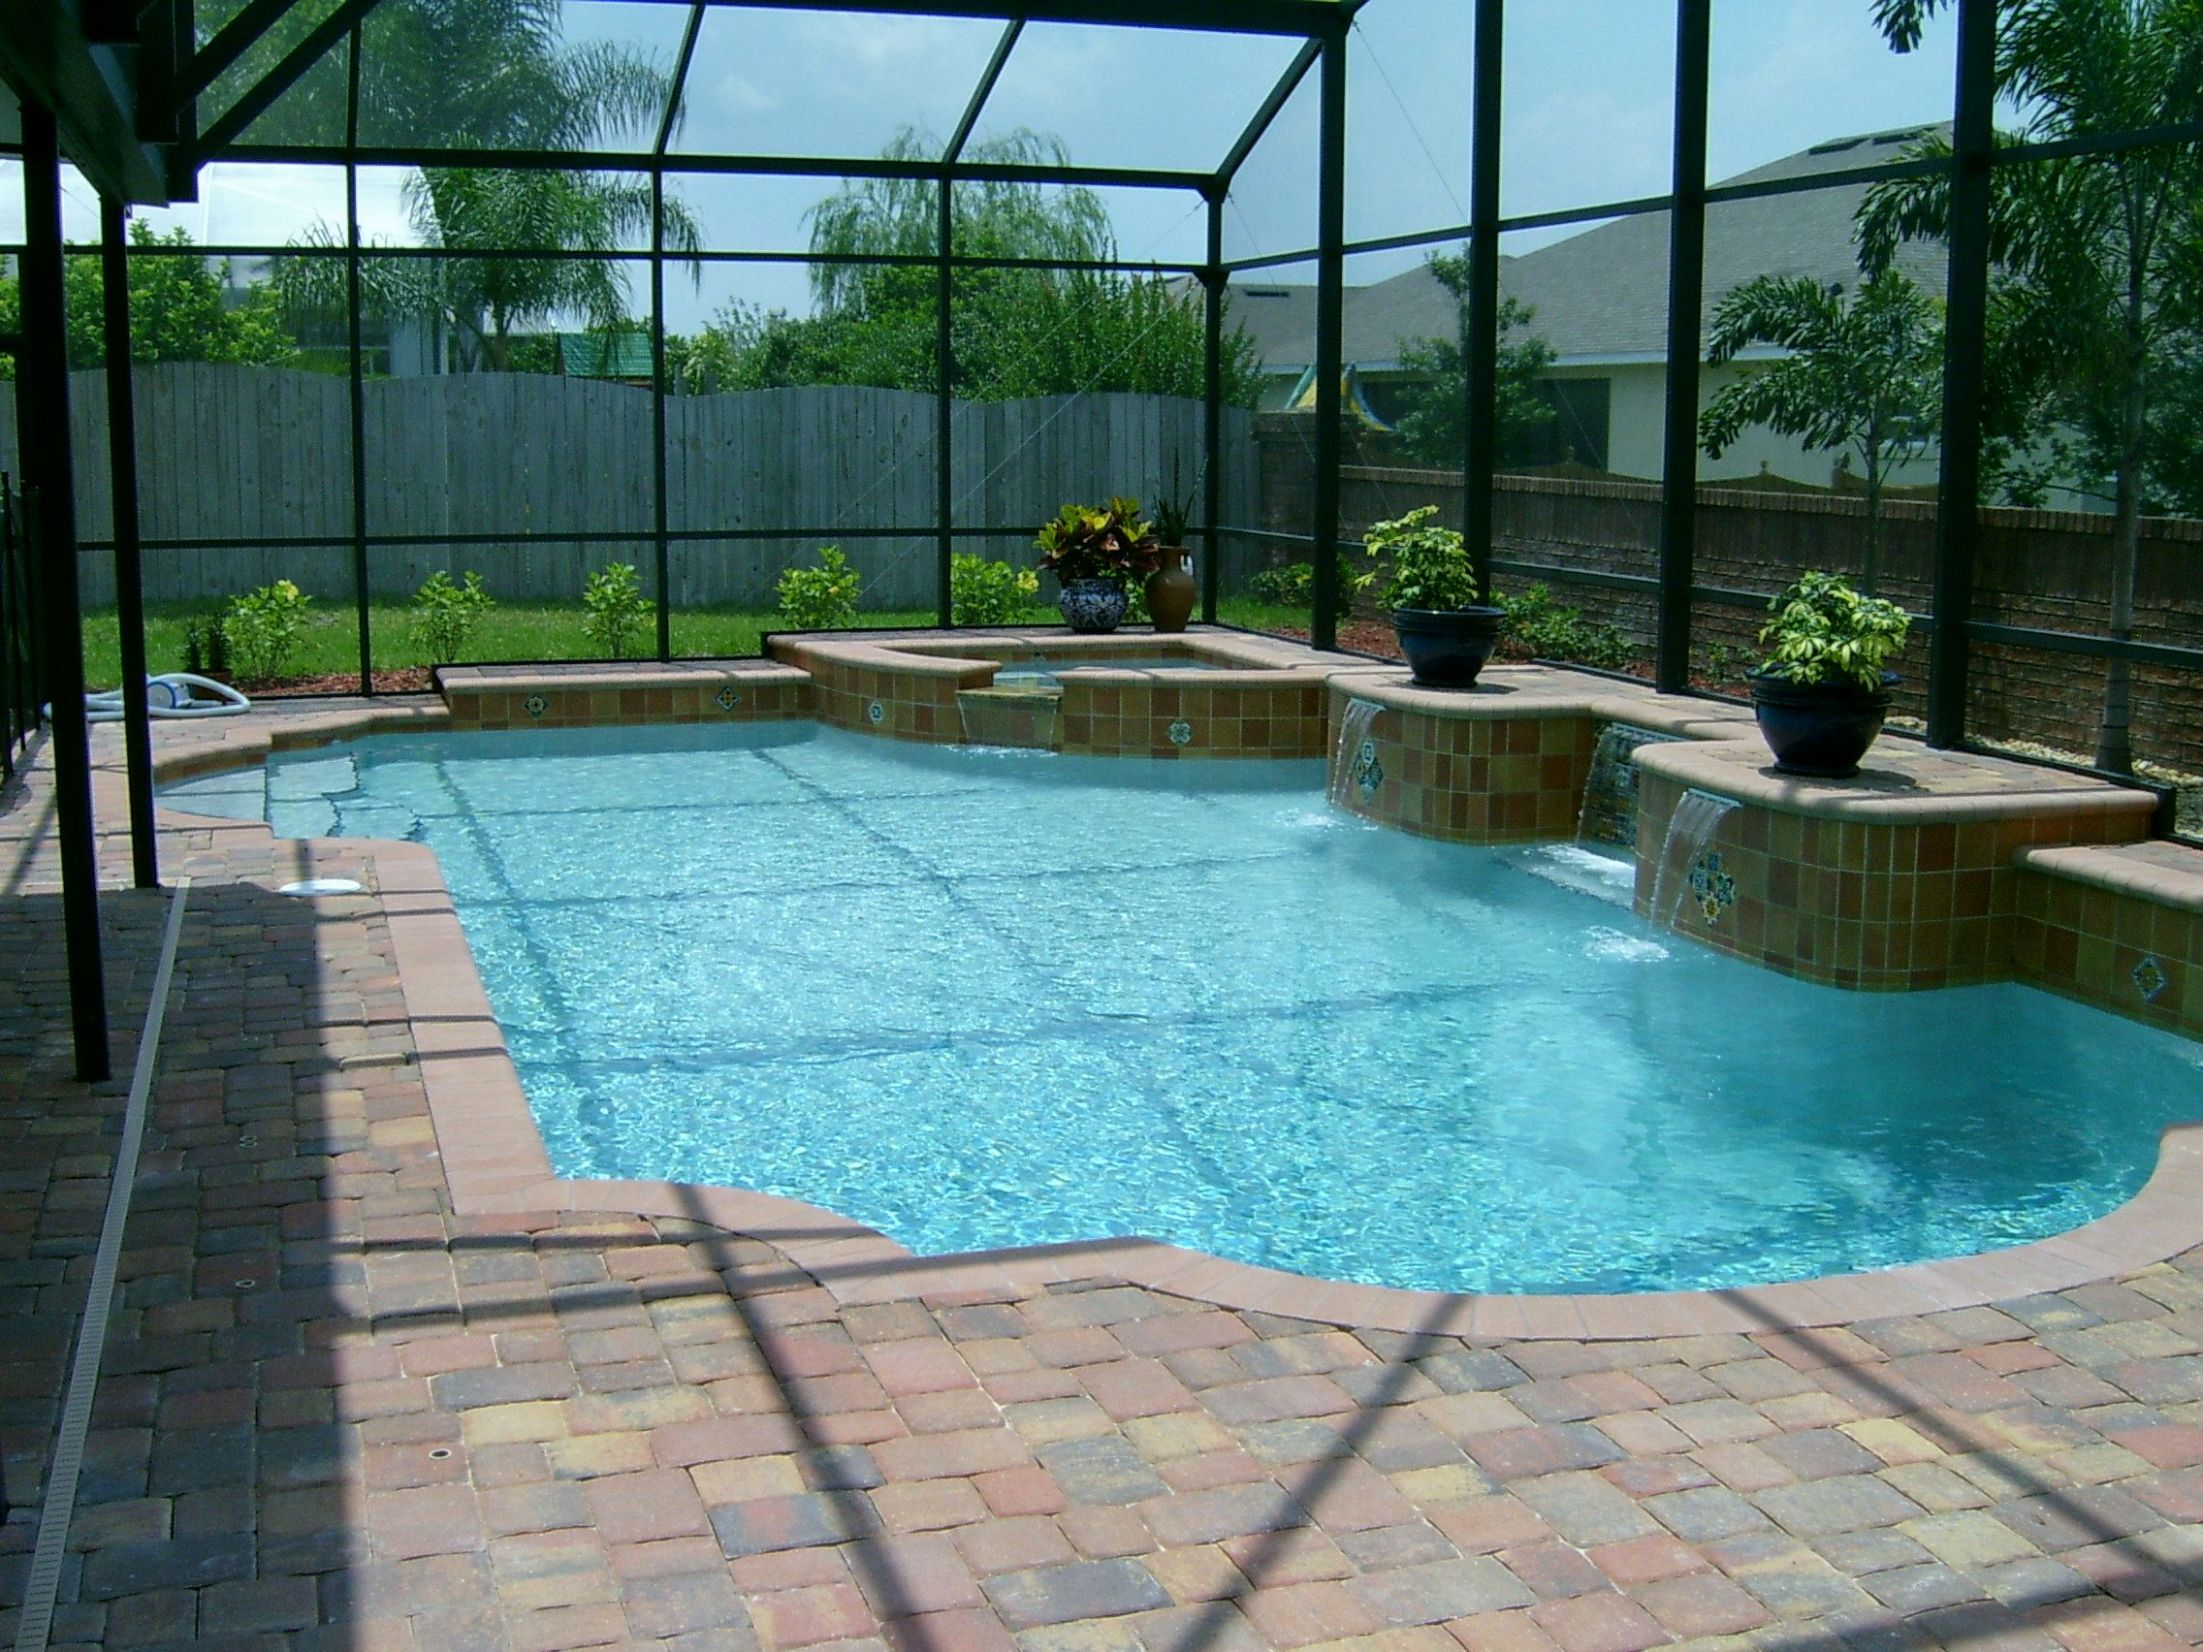 pool ideas | Backyard pool landscaping, Pool house plans, Backyard ...